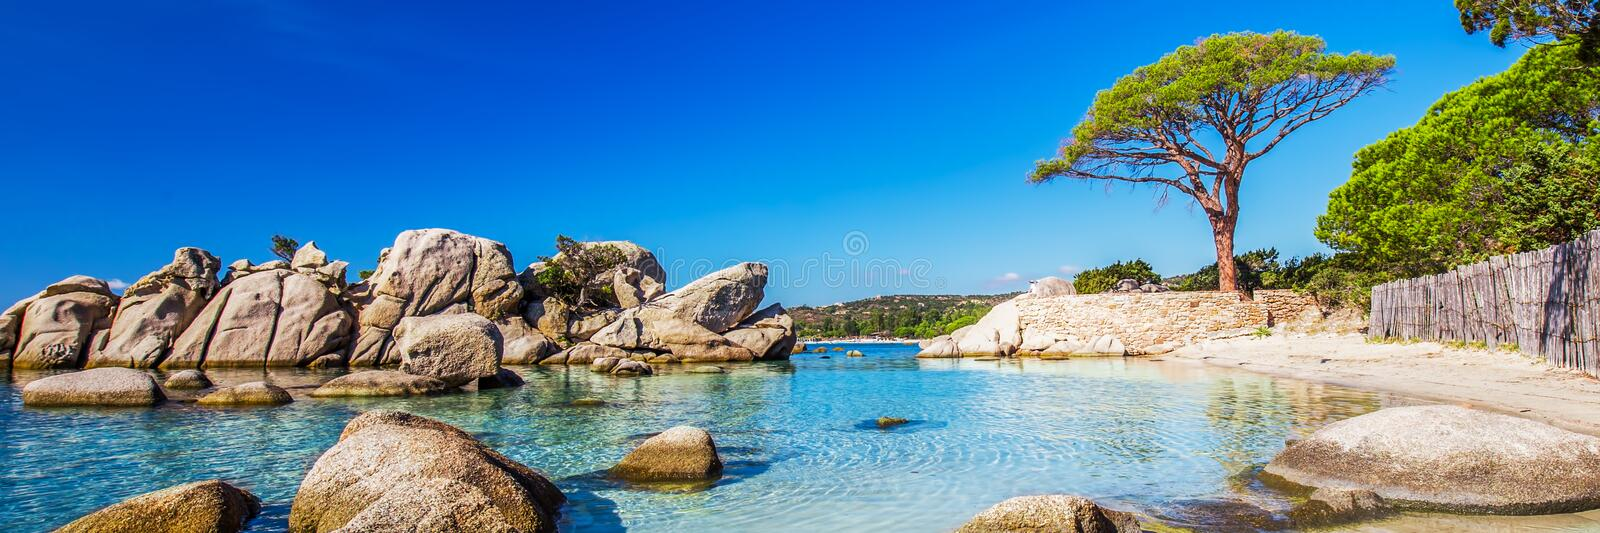 Famous Pine Tree with lagoon on Palombaggia beach, Corsica, France, Europe. royalty free stock photography